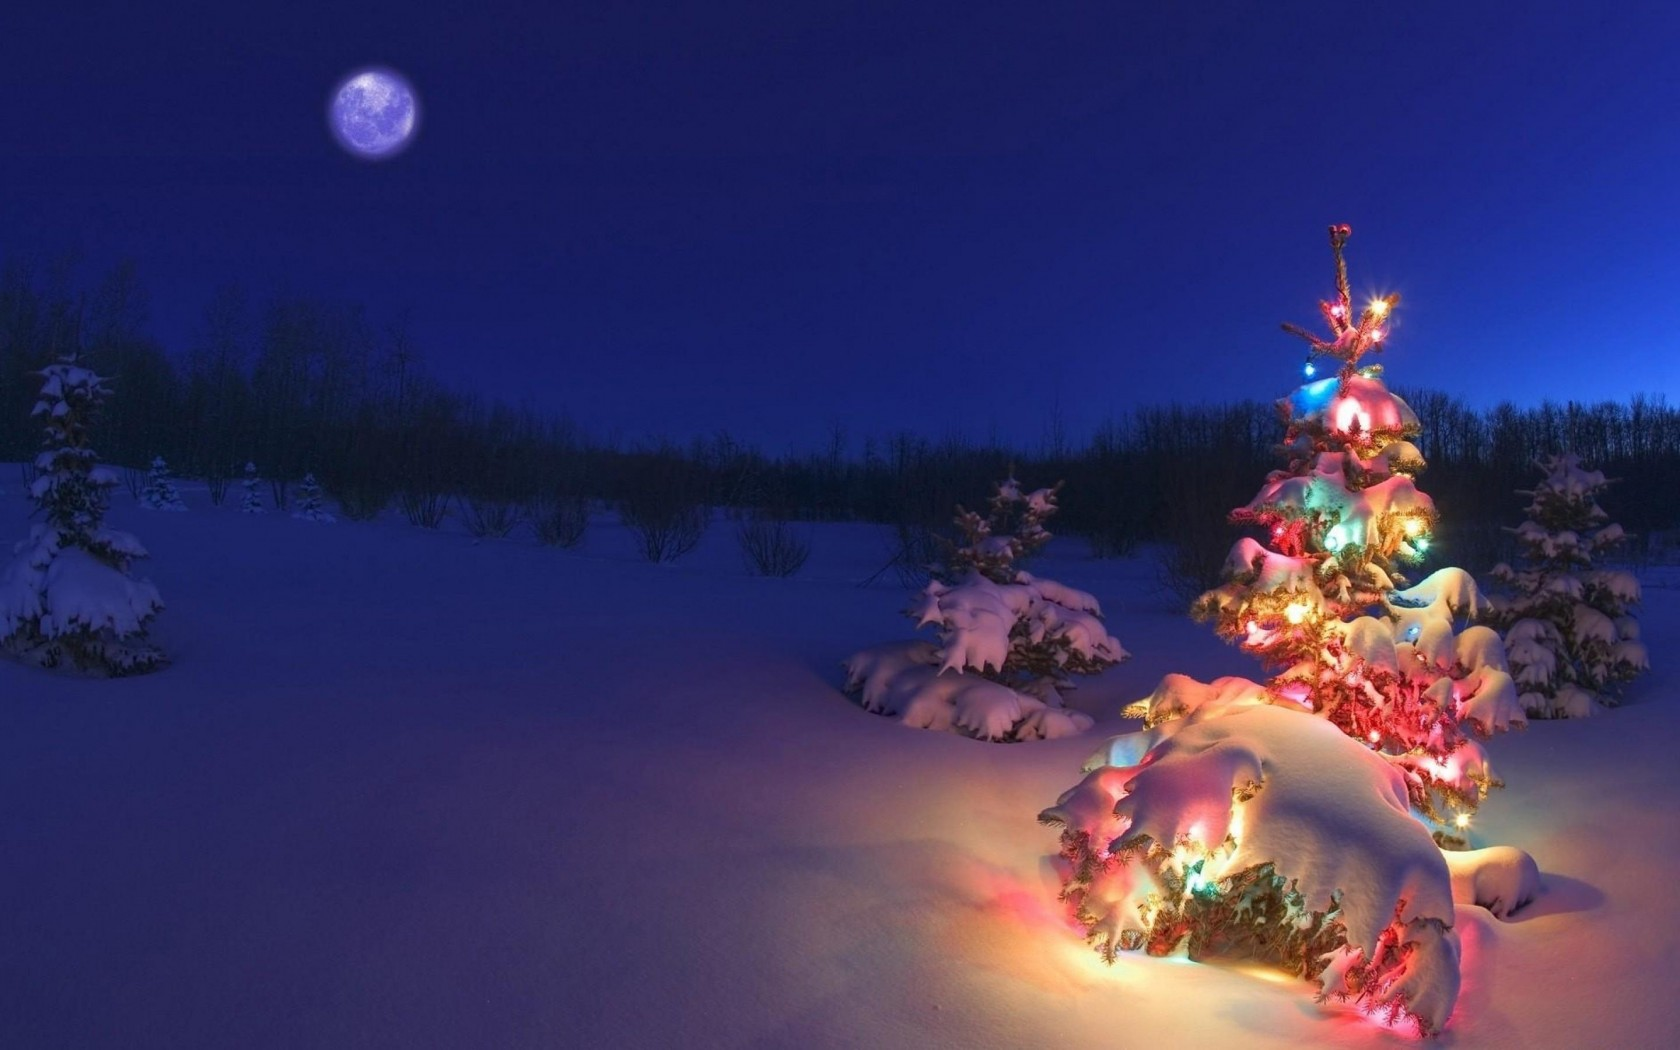 Christmas Night Moon Wallpaper for Desktop 1680x1050